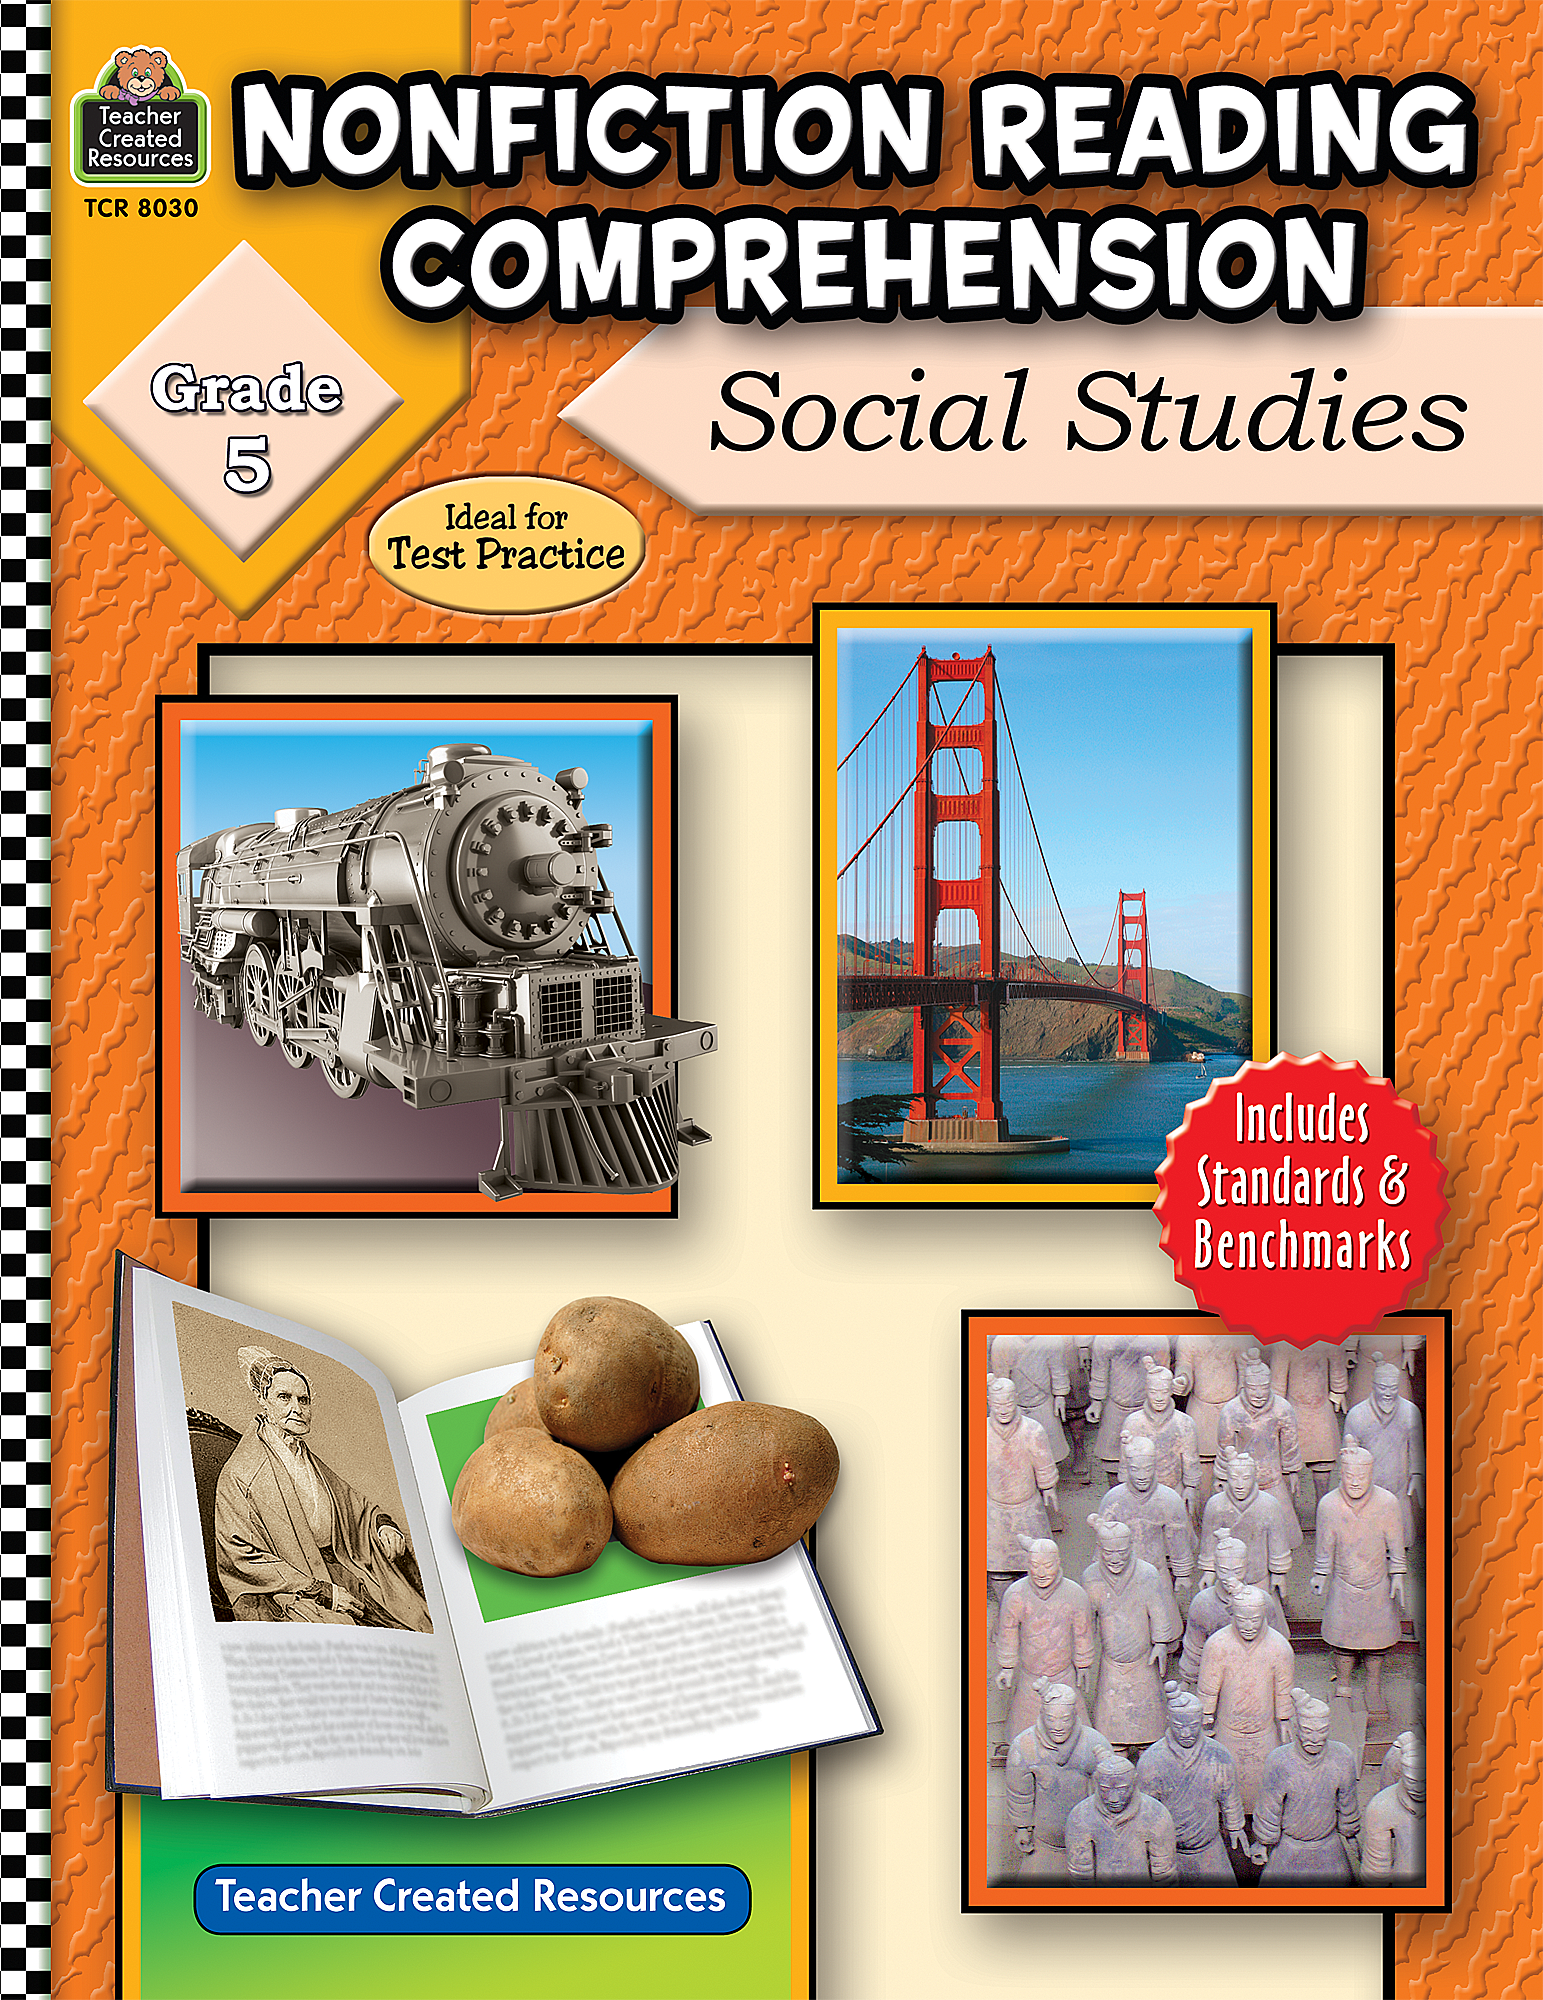 Nonfiction Reading Comprehension Social Studies Grade 5 – Teacher Created Resources Worksheets